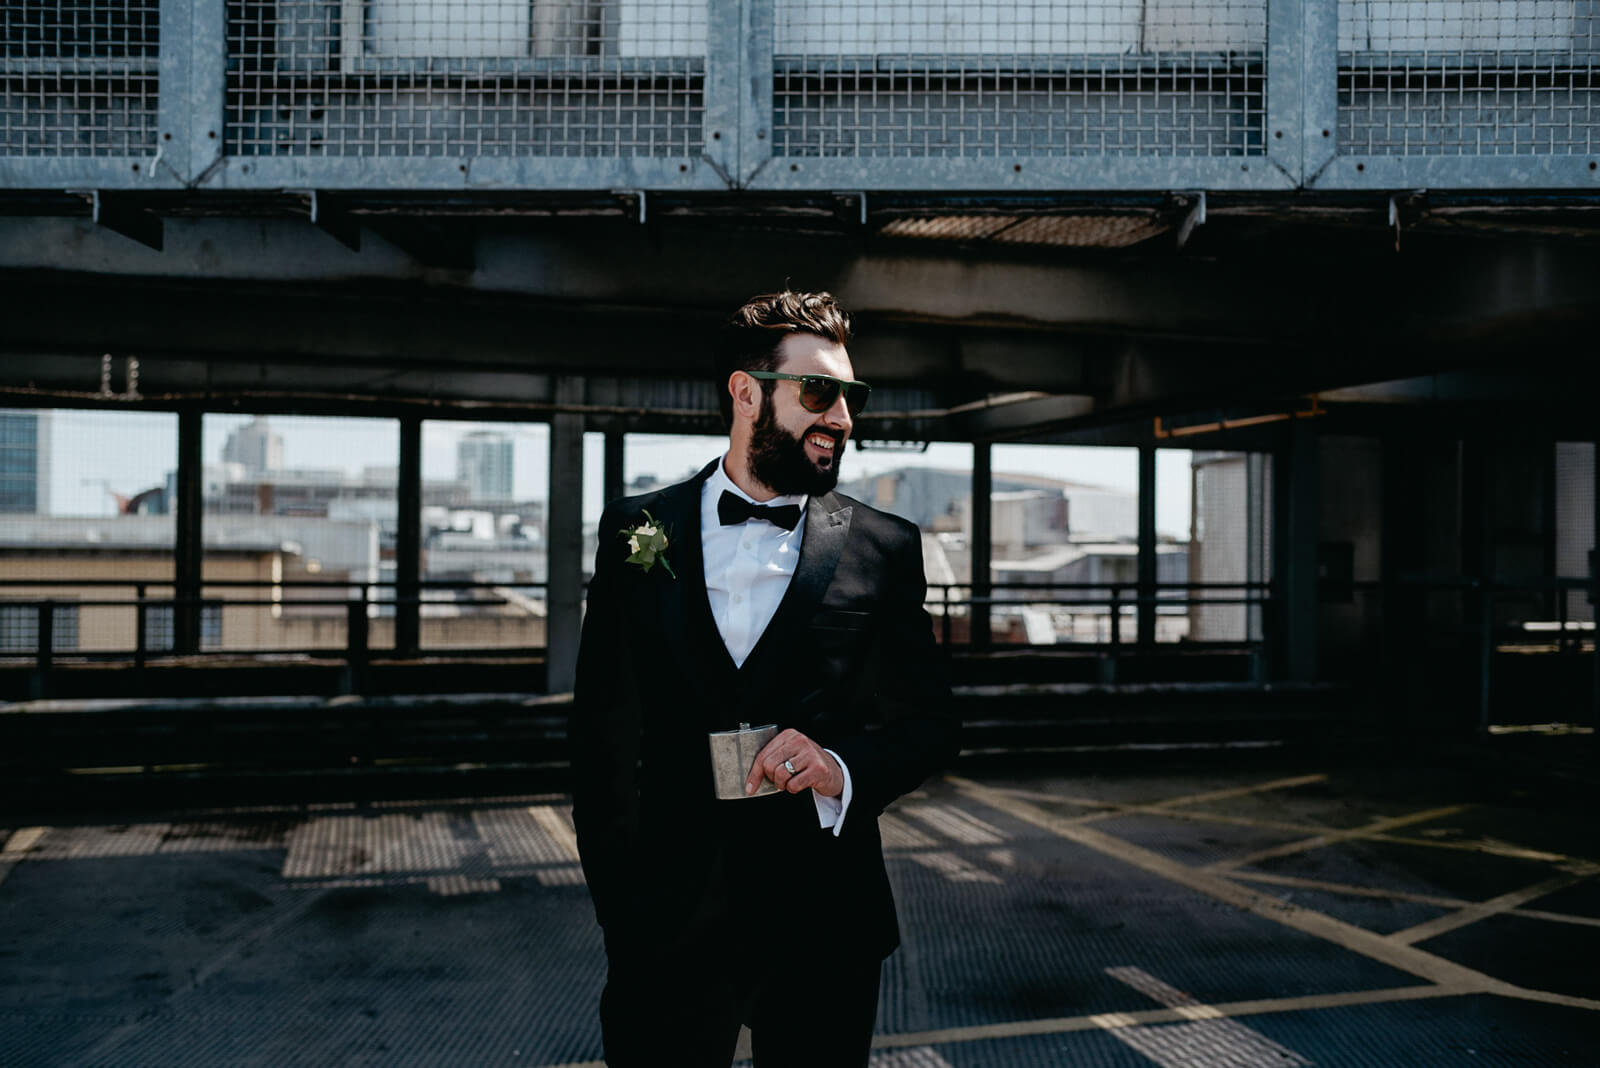 dapper city groom on rooftop for portraits following city hall wedding